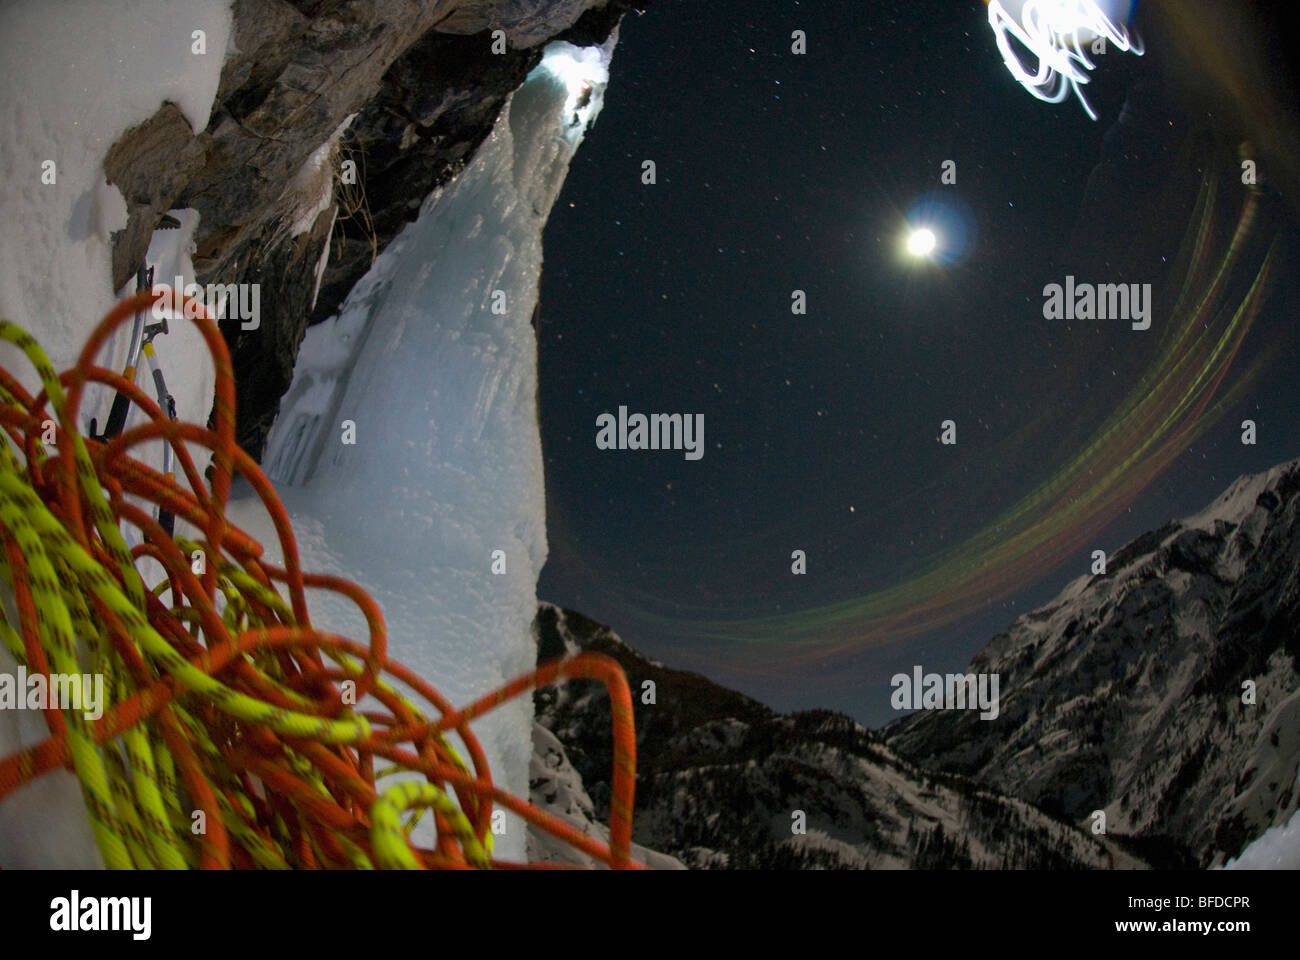 Night view of ropes as a young man ice climbs with a headlamp under a full moon. - Stock Image